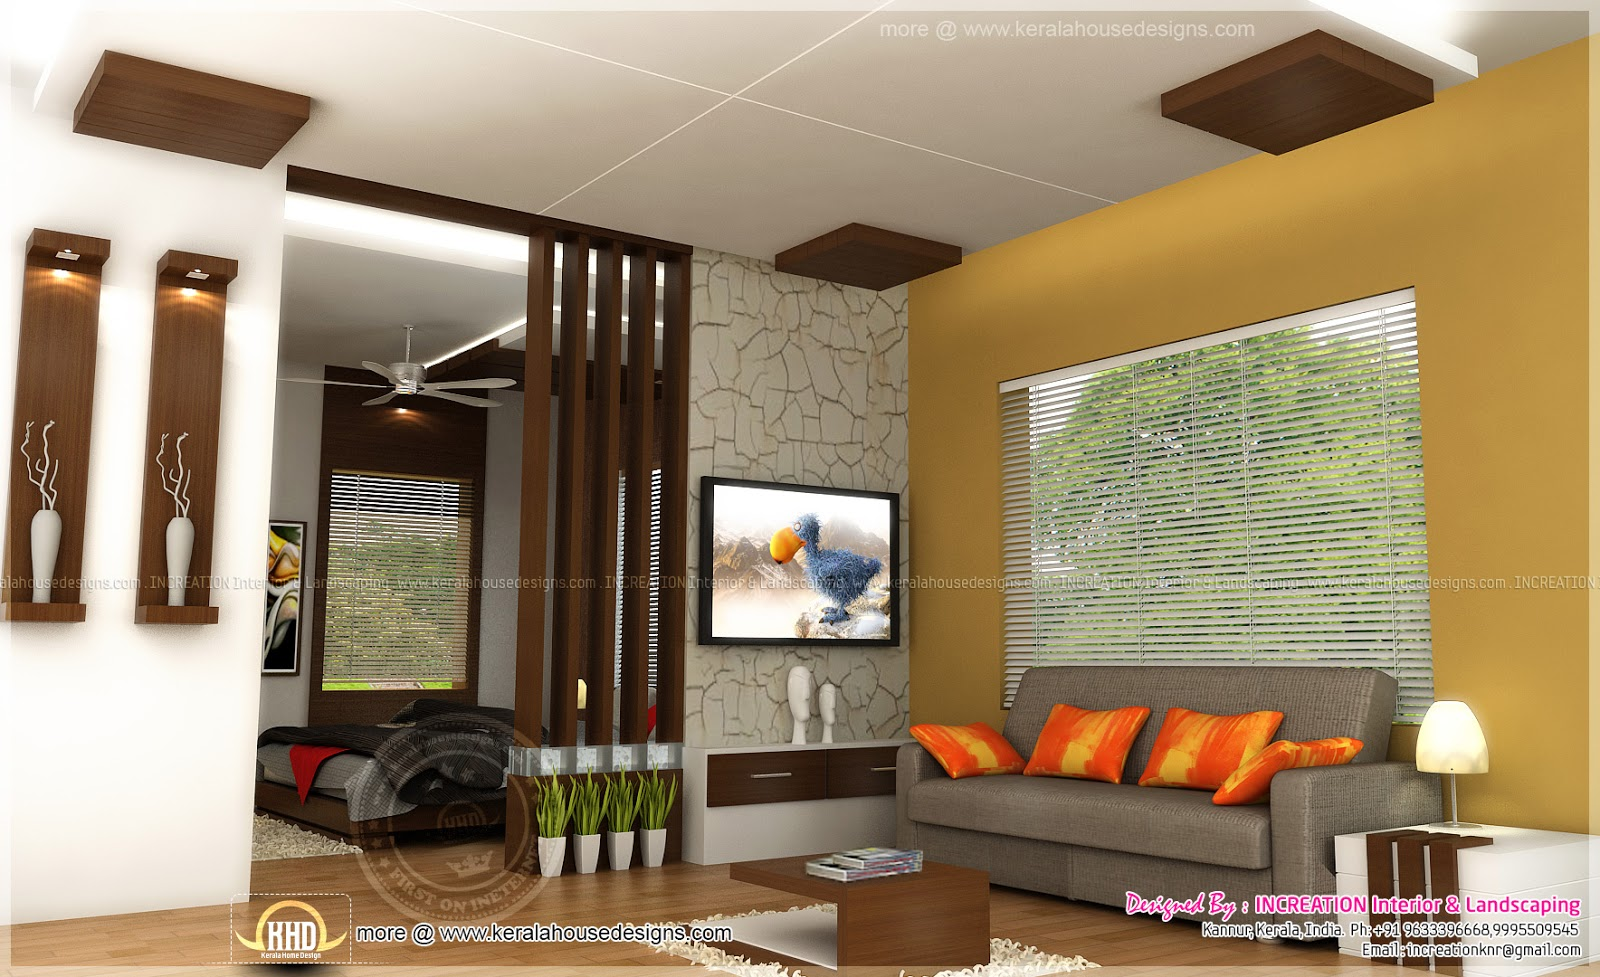 Interior designs from kannur kerala kerala home design for Kerala house interior painting photos